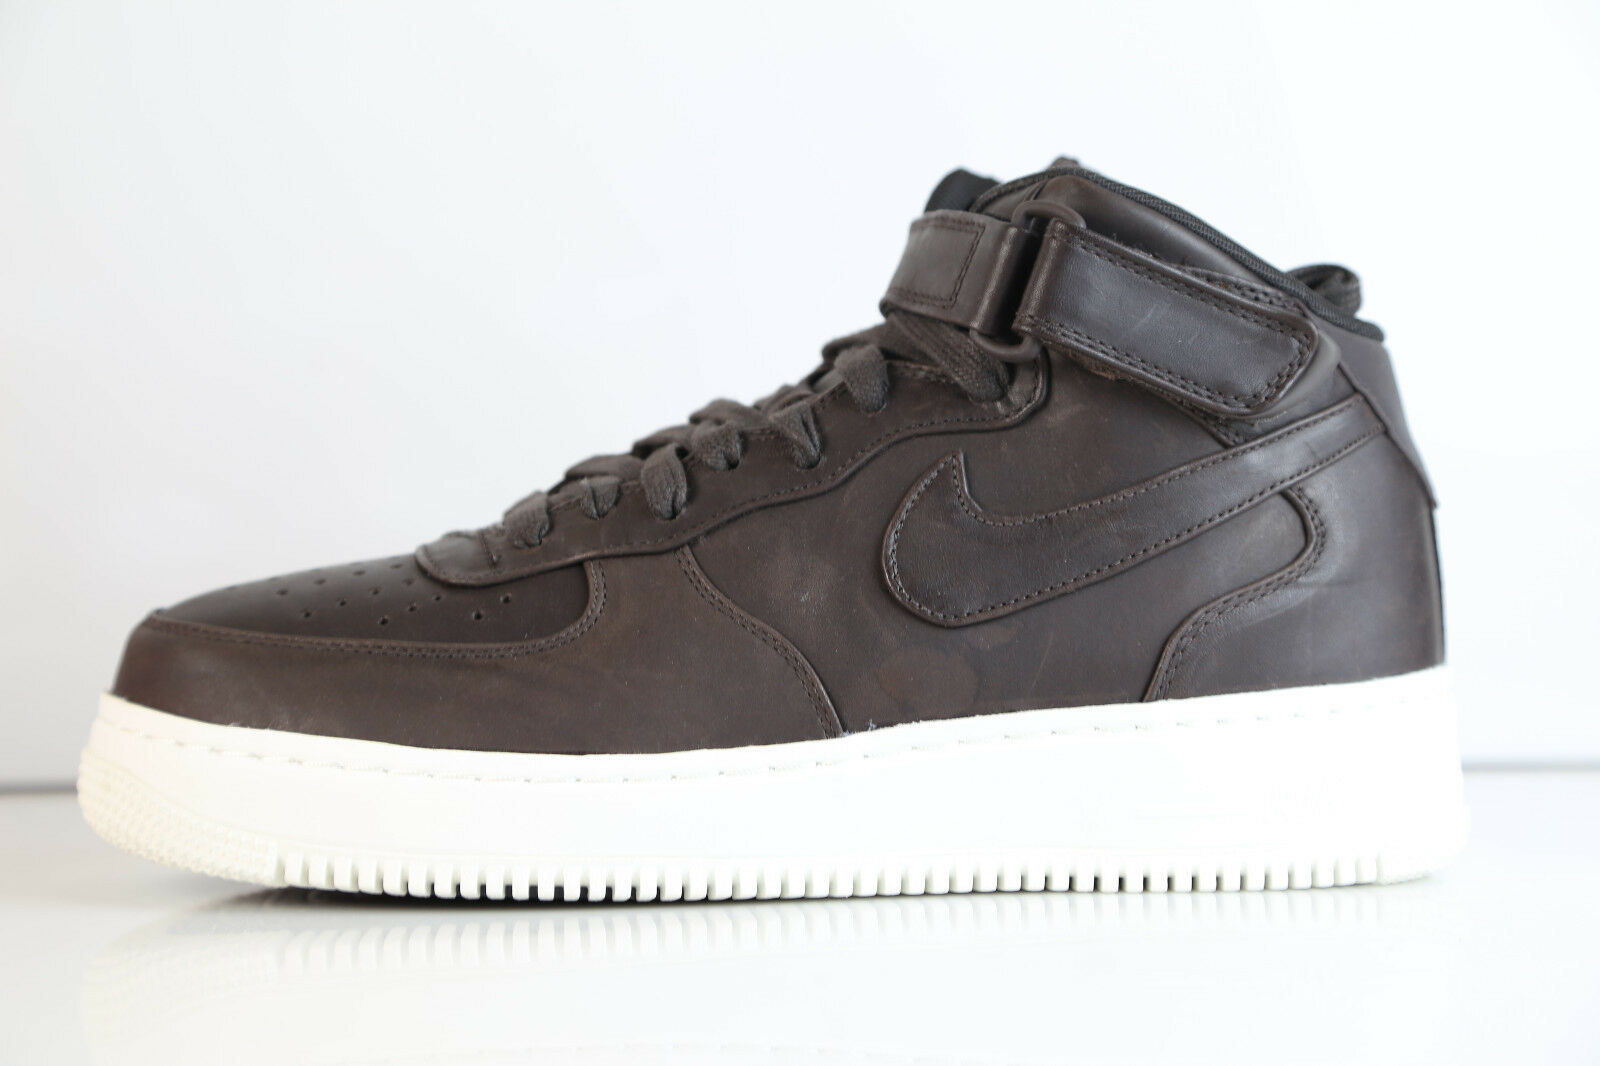 Nike laboratorio air force 1 metà velvet brown vela 905619-200 - 12 nikelab cuoio